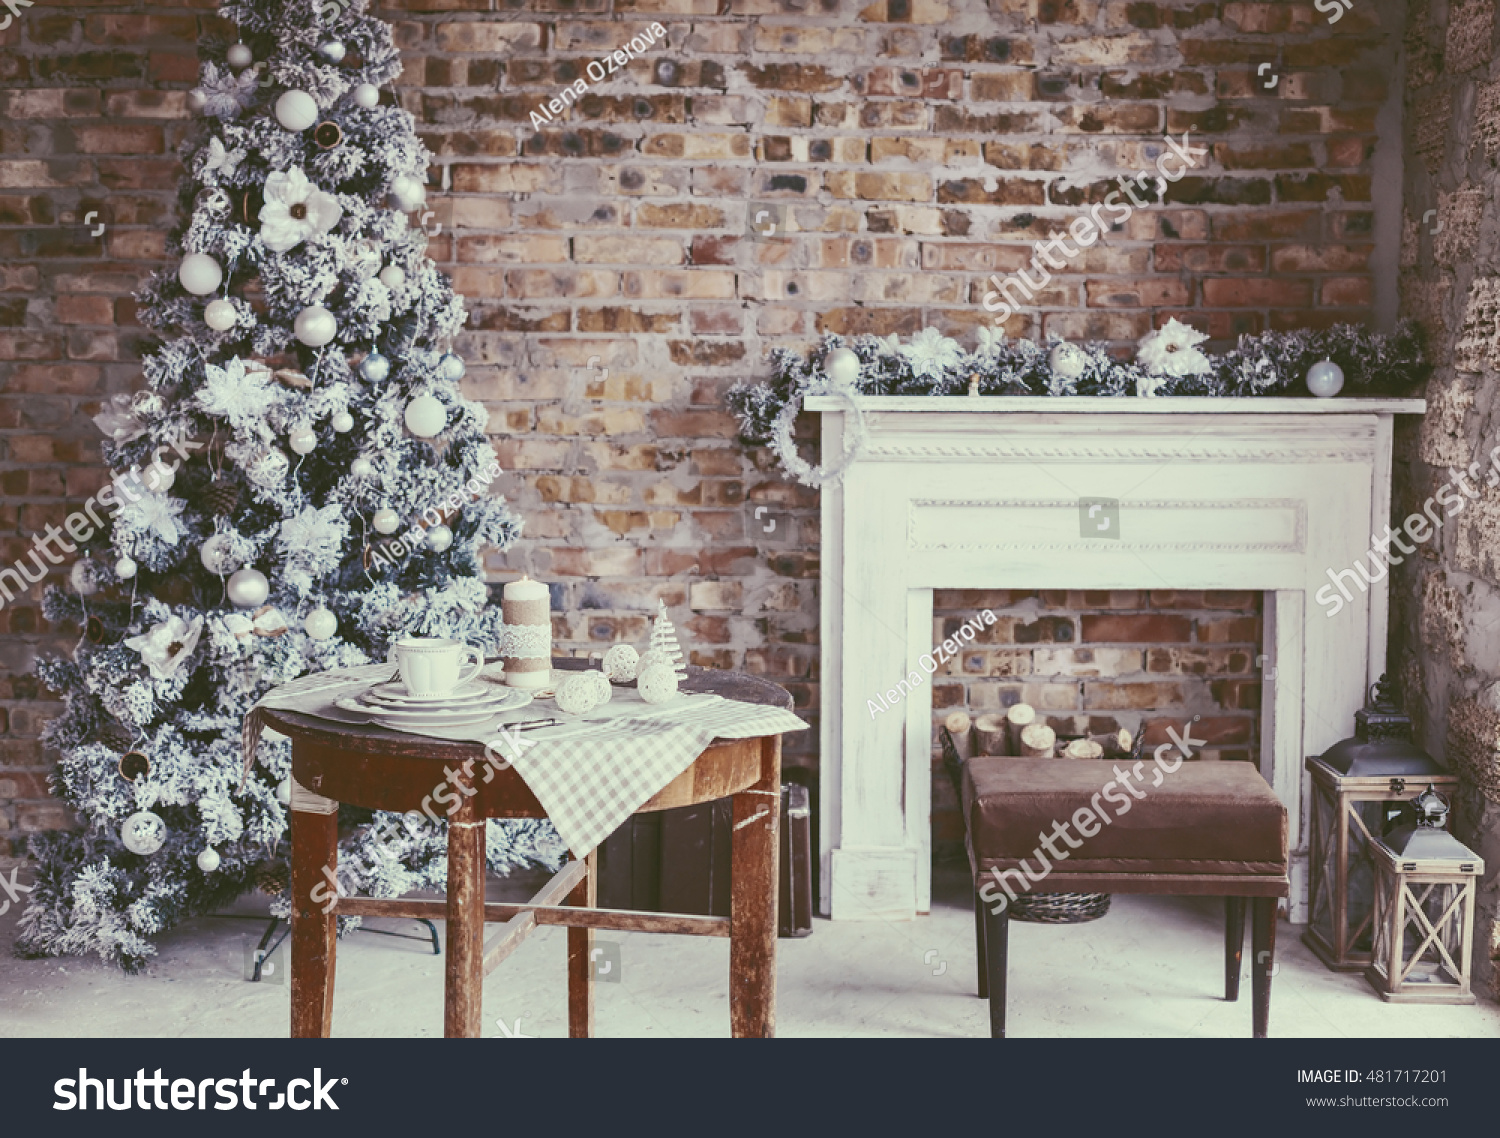 Winter home decor. Christmas tree in loft interior against brick wall. Old  vintage furniture